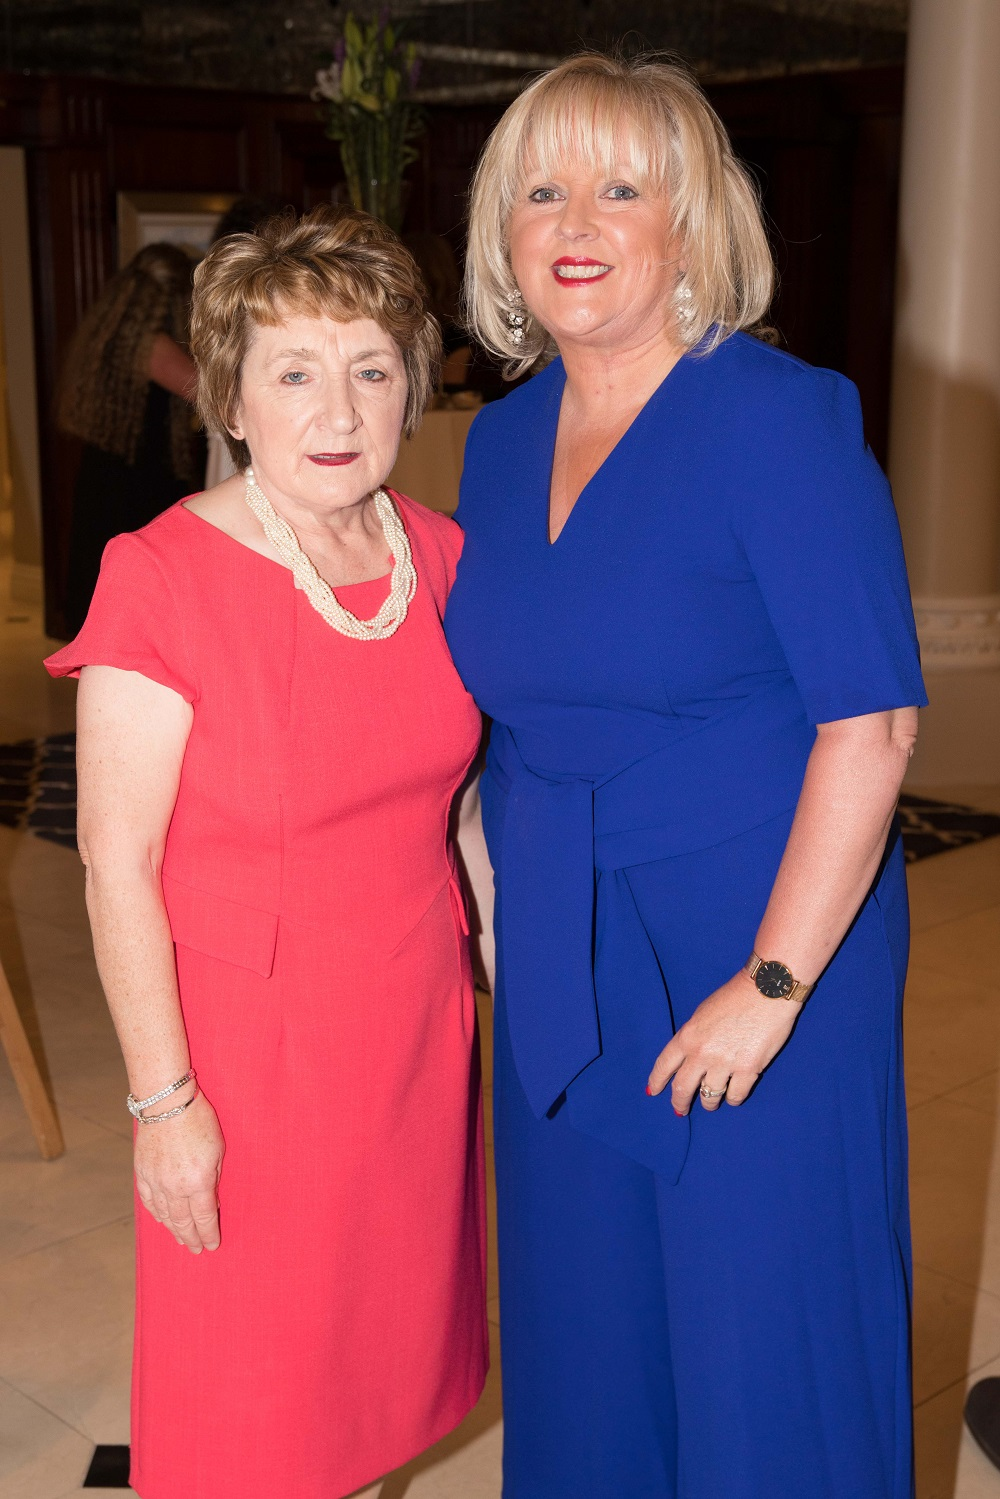 Sally O'Neill and Hilary O'Keeffe